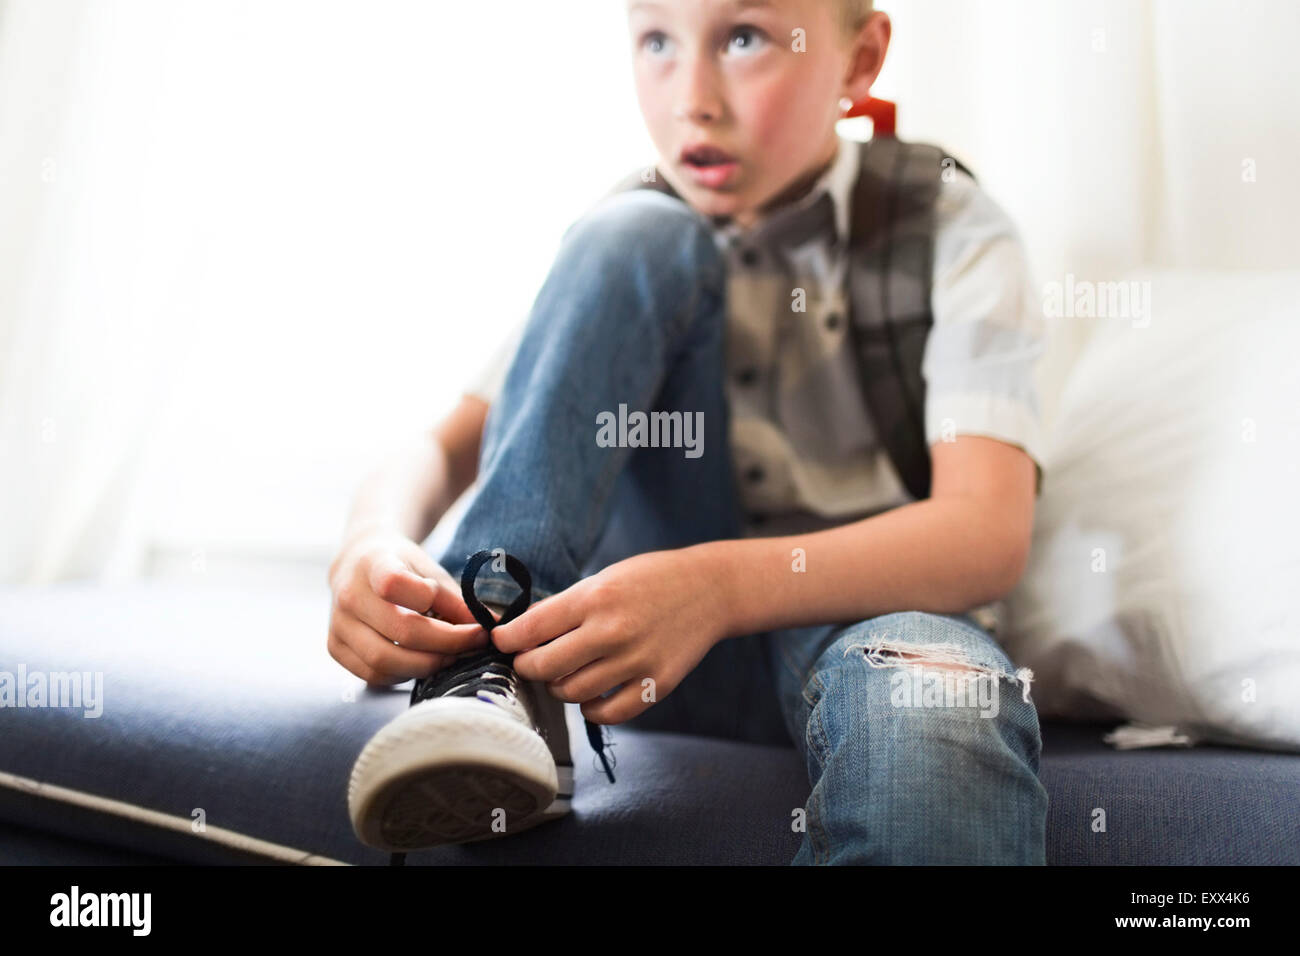 Boy (6-7) tying shoes - Stock Image